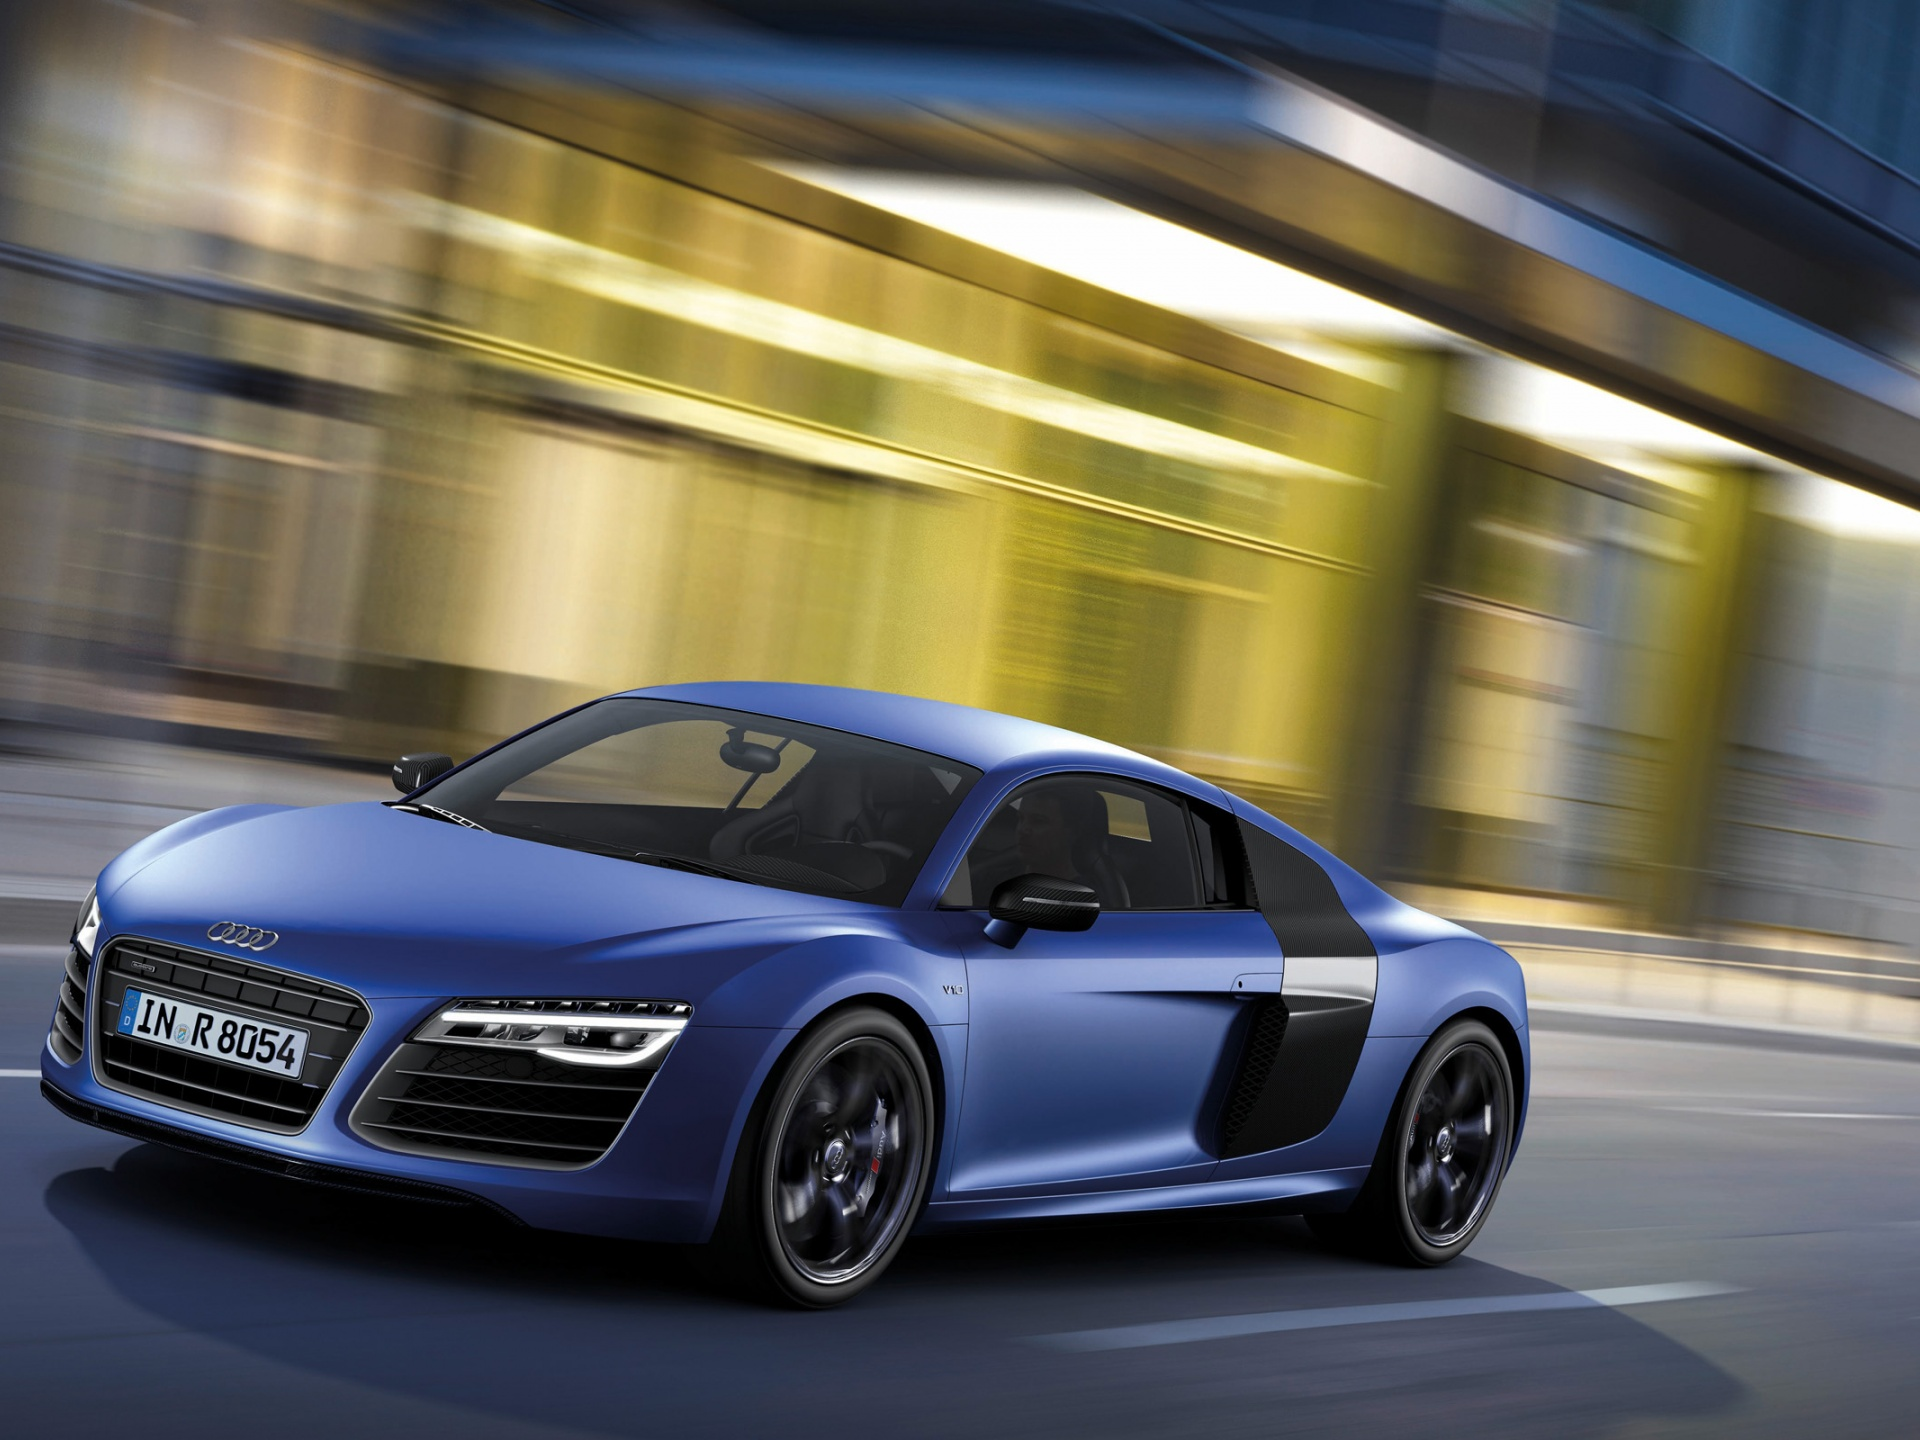 click to free download the wallpaper--World-Known Super Car Pics of Audi R8, a Blue Car in Great Speed, Along Scenes Rushing Behind 1920X1440 free wallpaper download